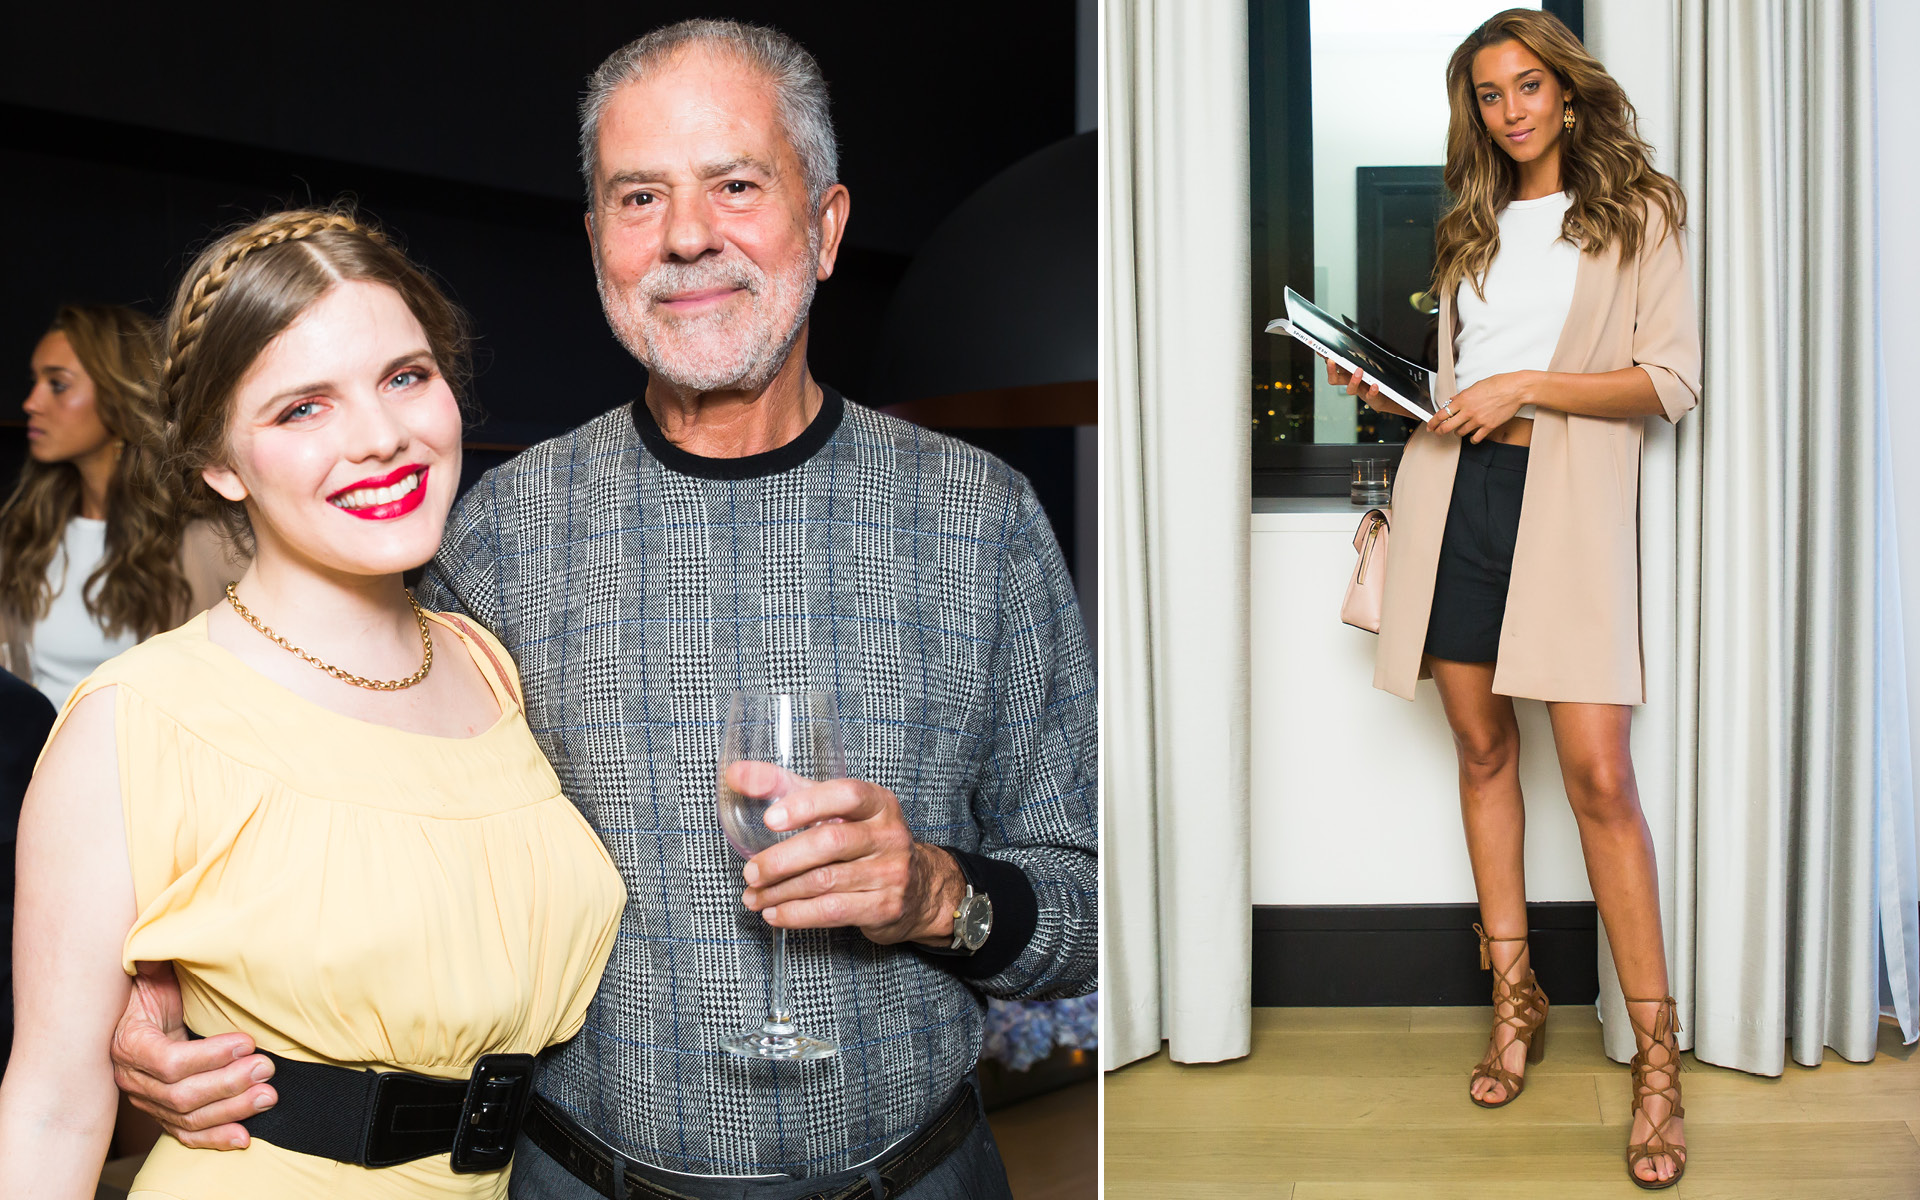 Left: Syrie Moskowitz and Thanos Kamiliotis; Right: Ebony Anderberg, at Edition Hotel, celebrating Maxwell birthday and Spirit & Flesh magazine cover story by Mark Seliger